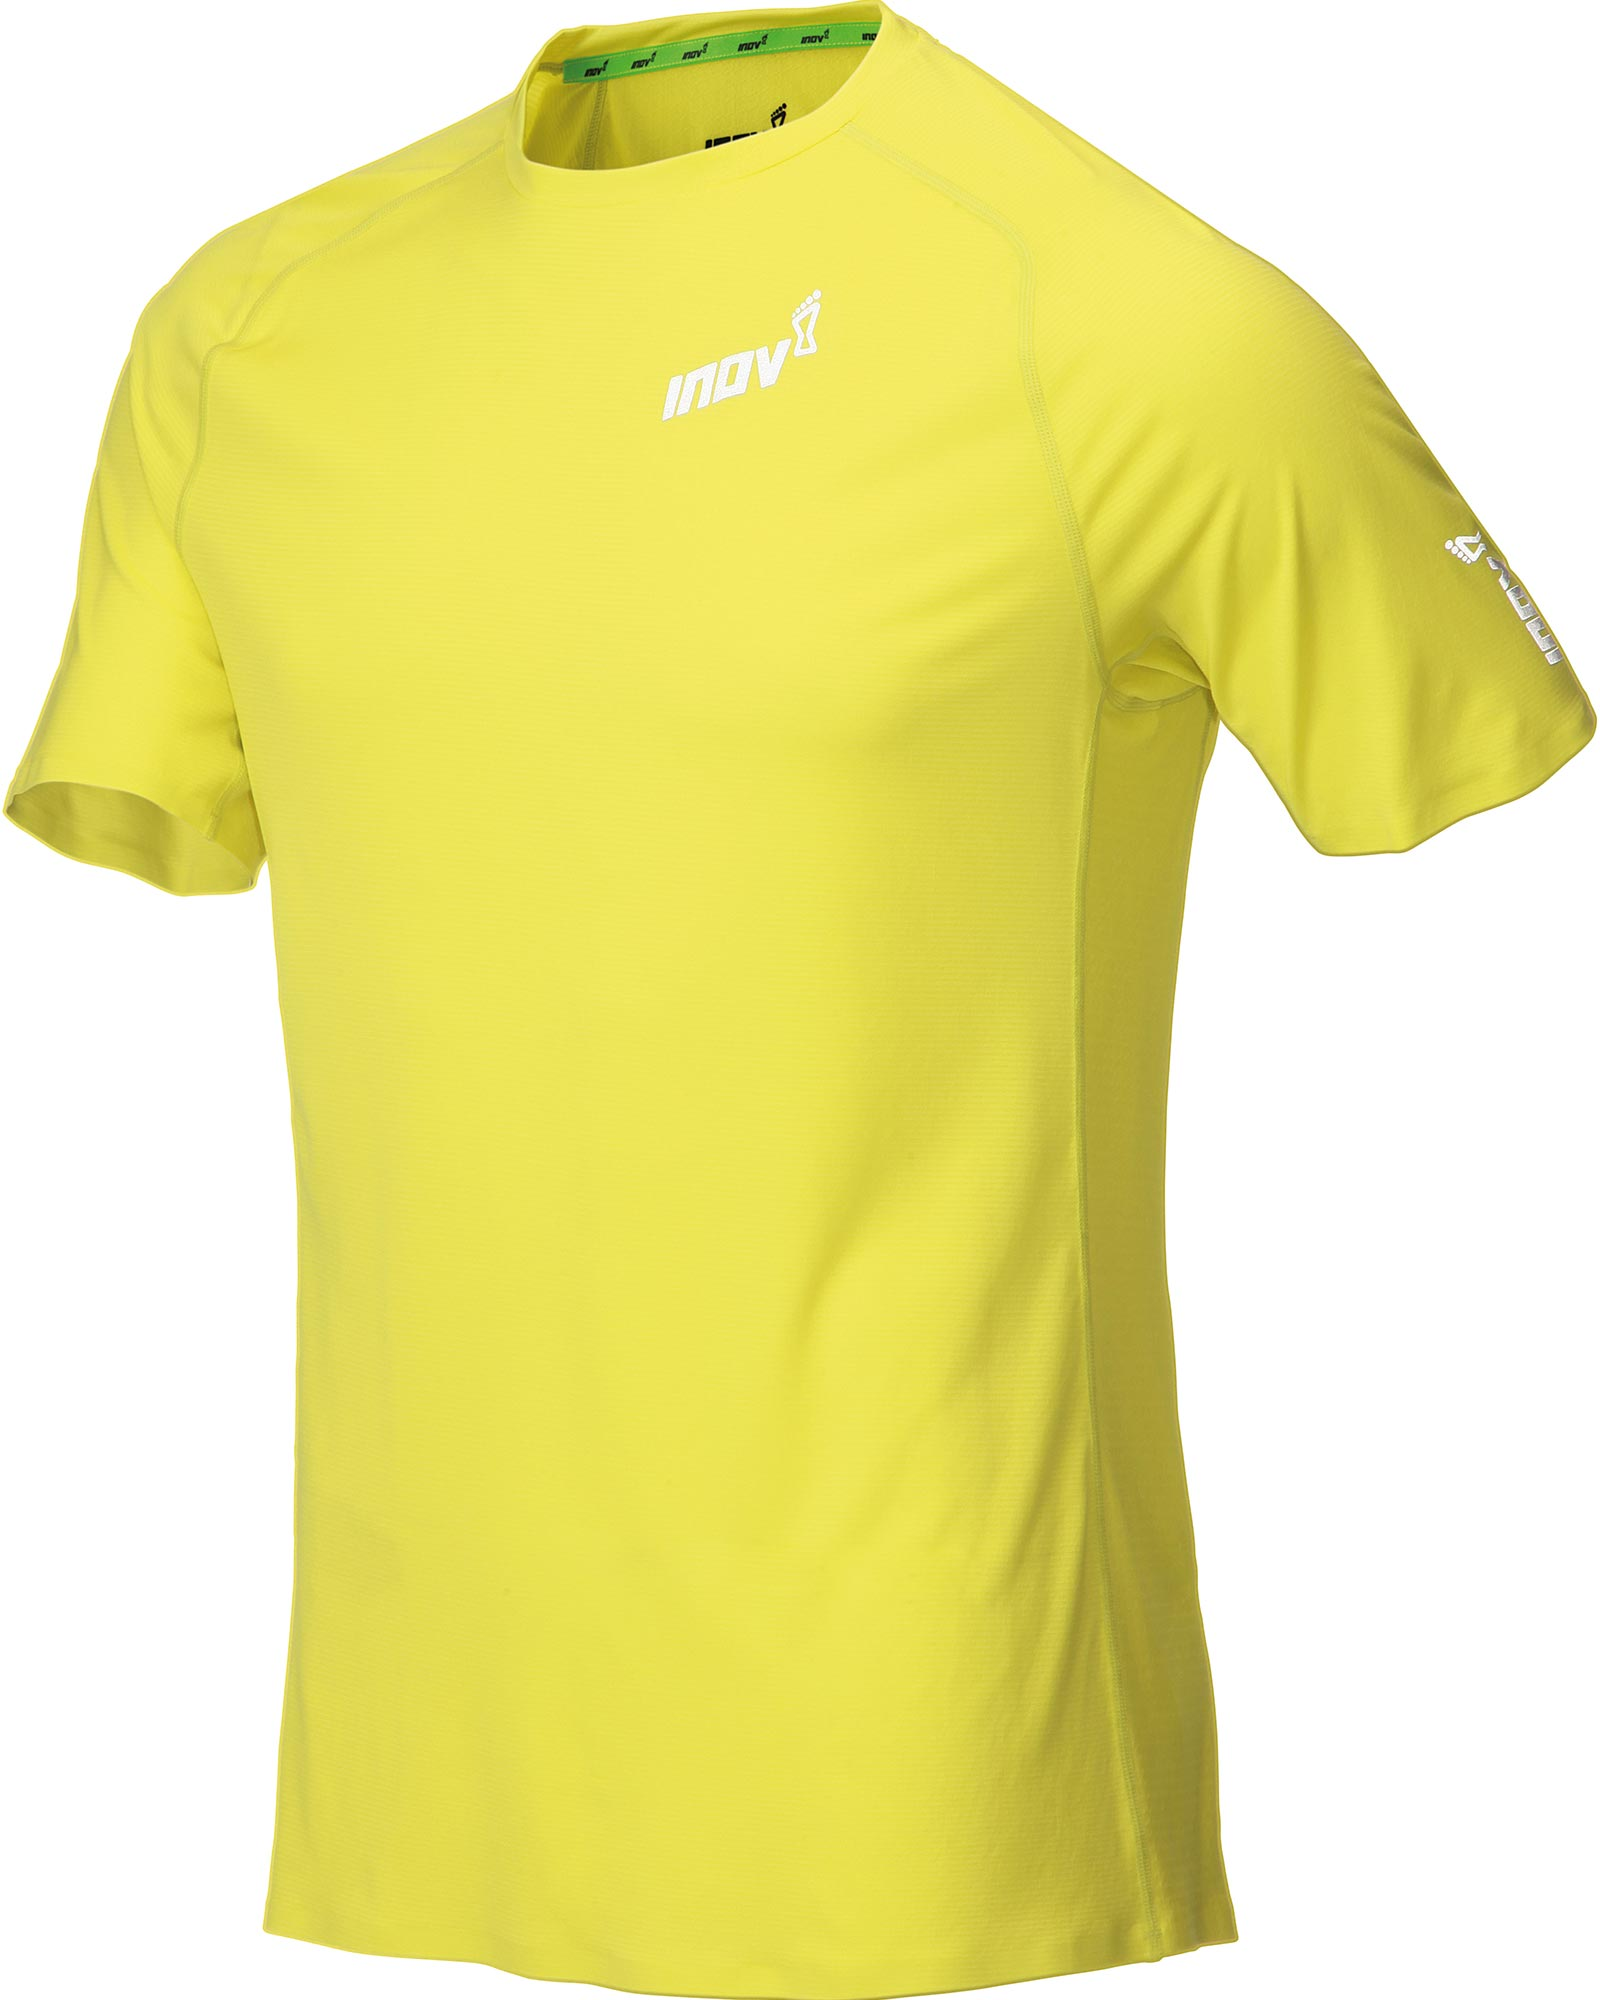 Inov-8 Men's S/S Base Elite T-Shirt 0